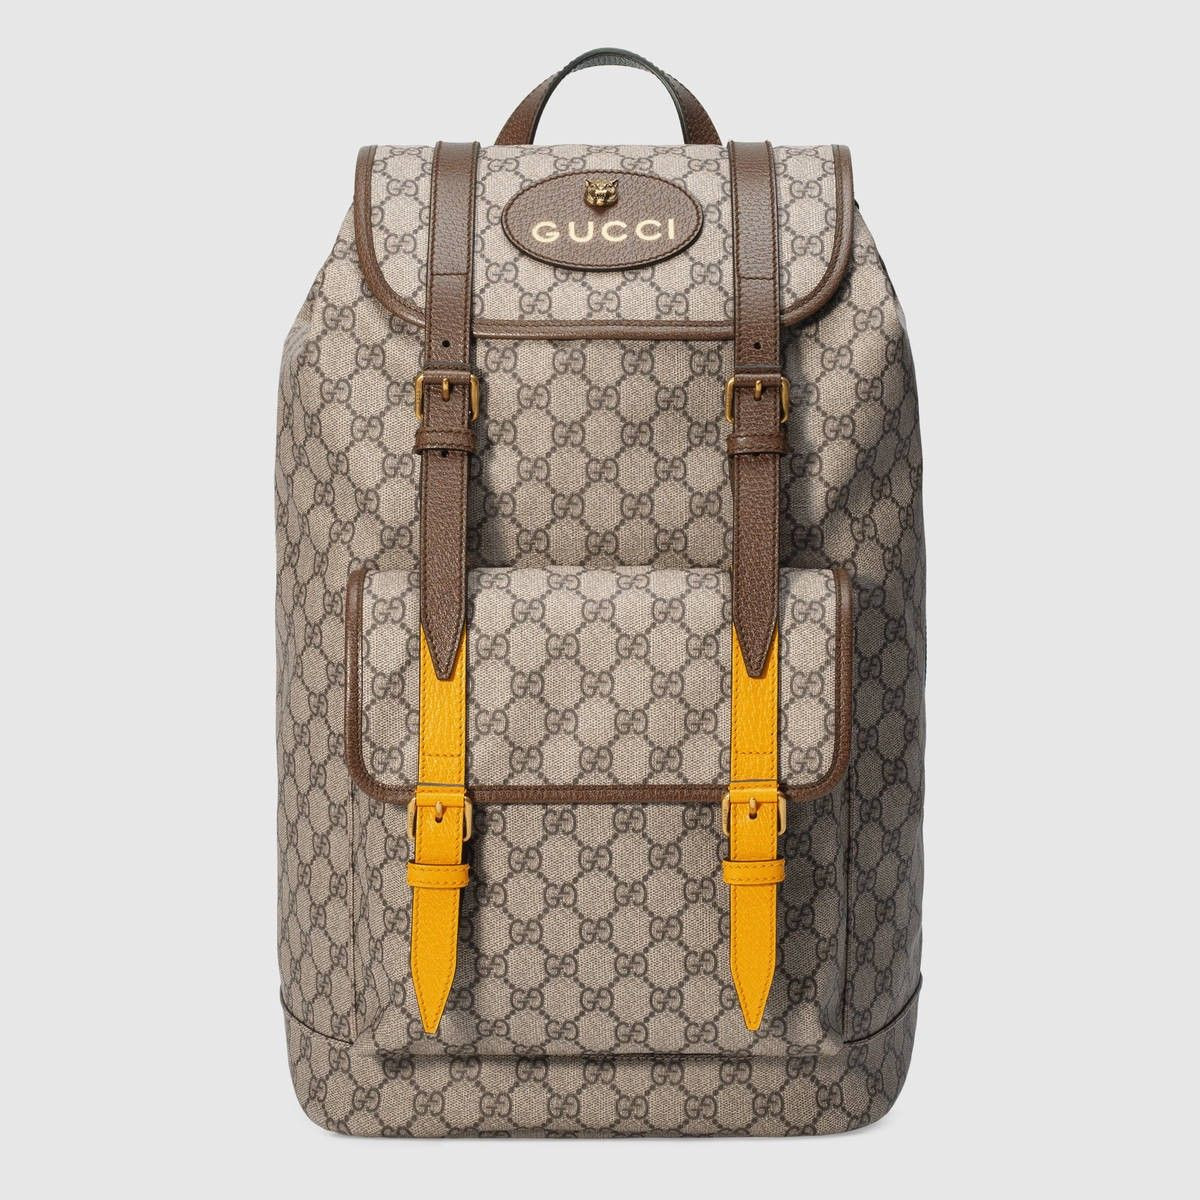 c702a7c78646 GUCCI Soft GG Supreme backpack - GG Supreme.  gucci  bags  leather  lining   linen  nylon  backpacks  cotton